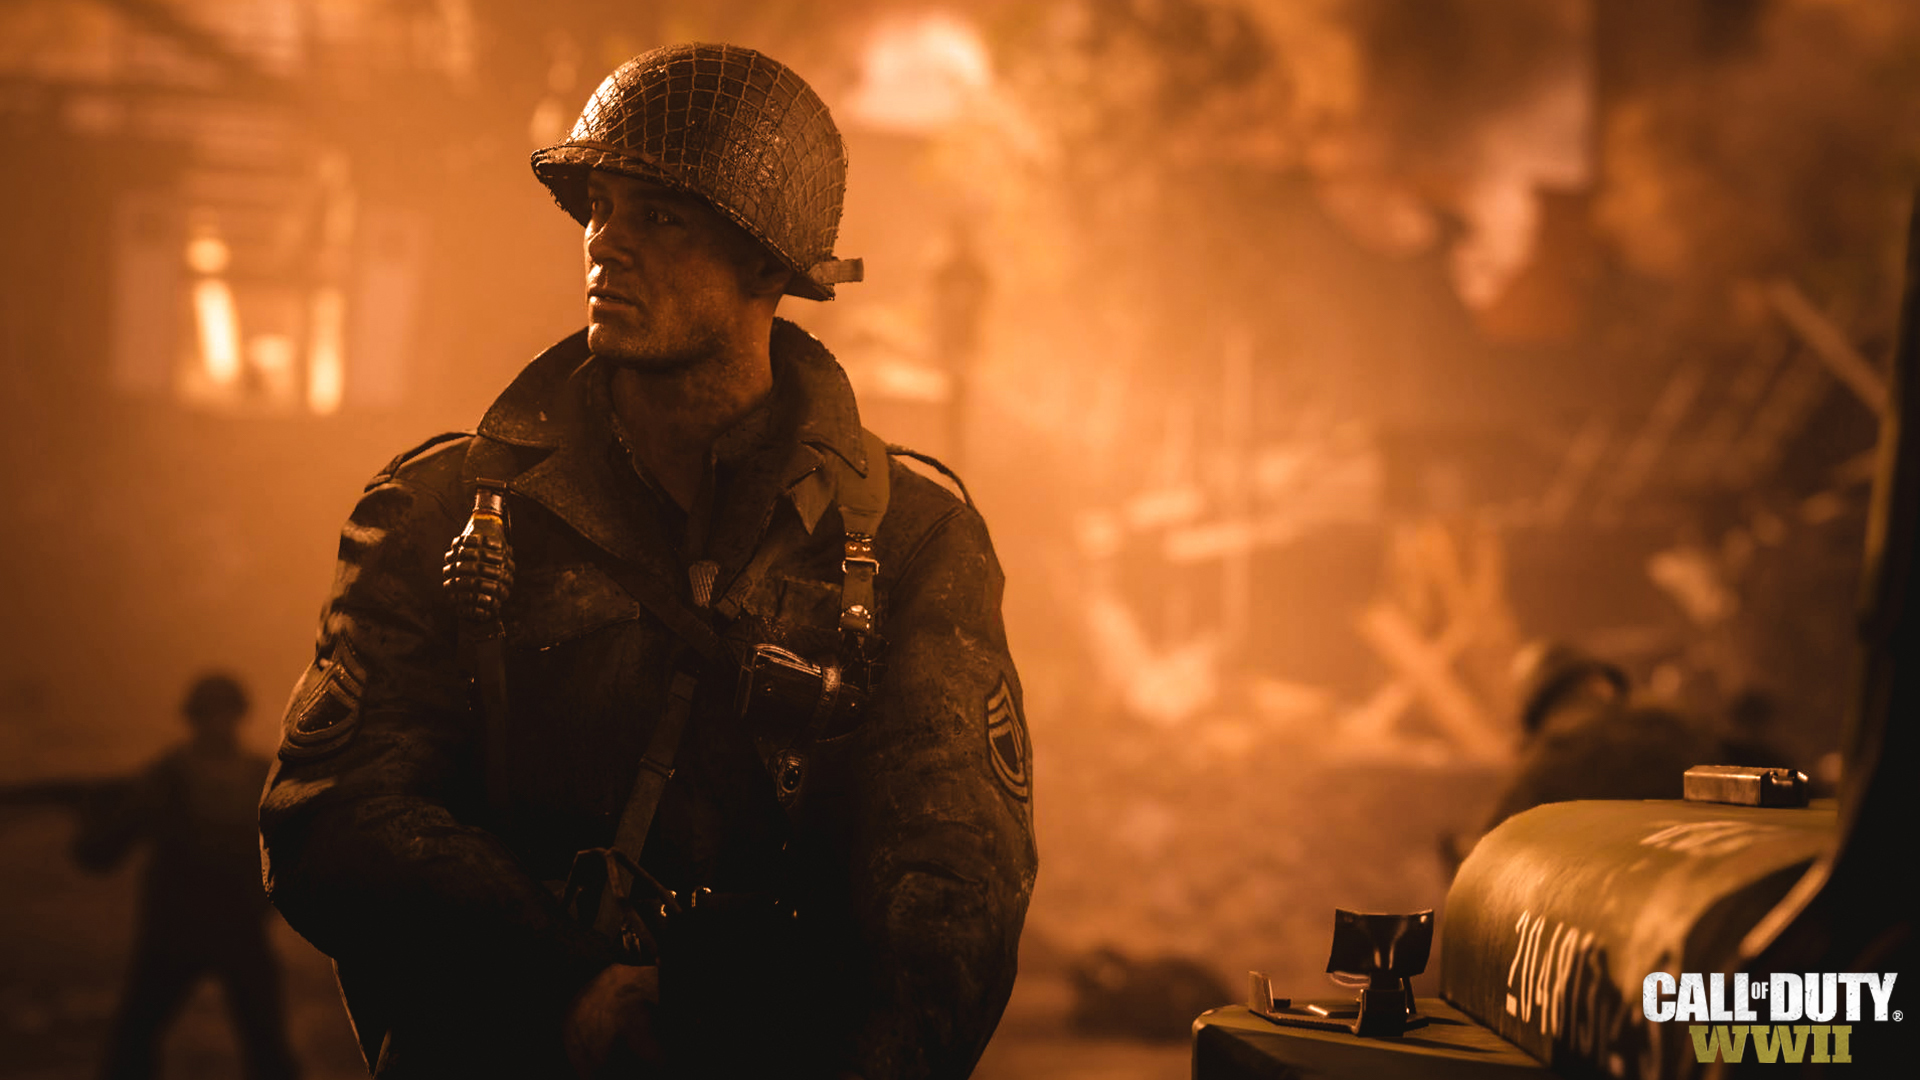 Video Call of Duty WWII trailer reveals Nov 3 release date 1920x1080